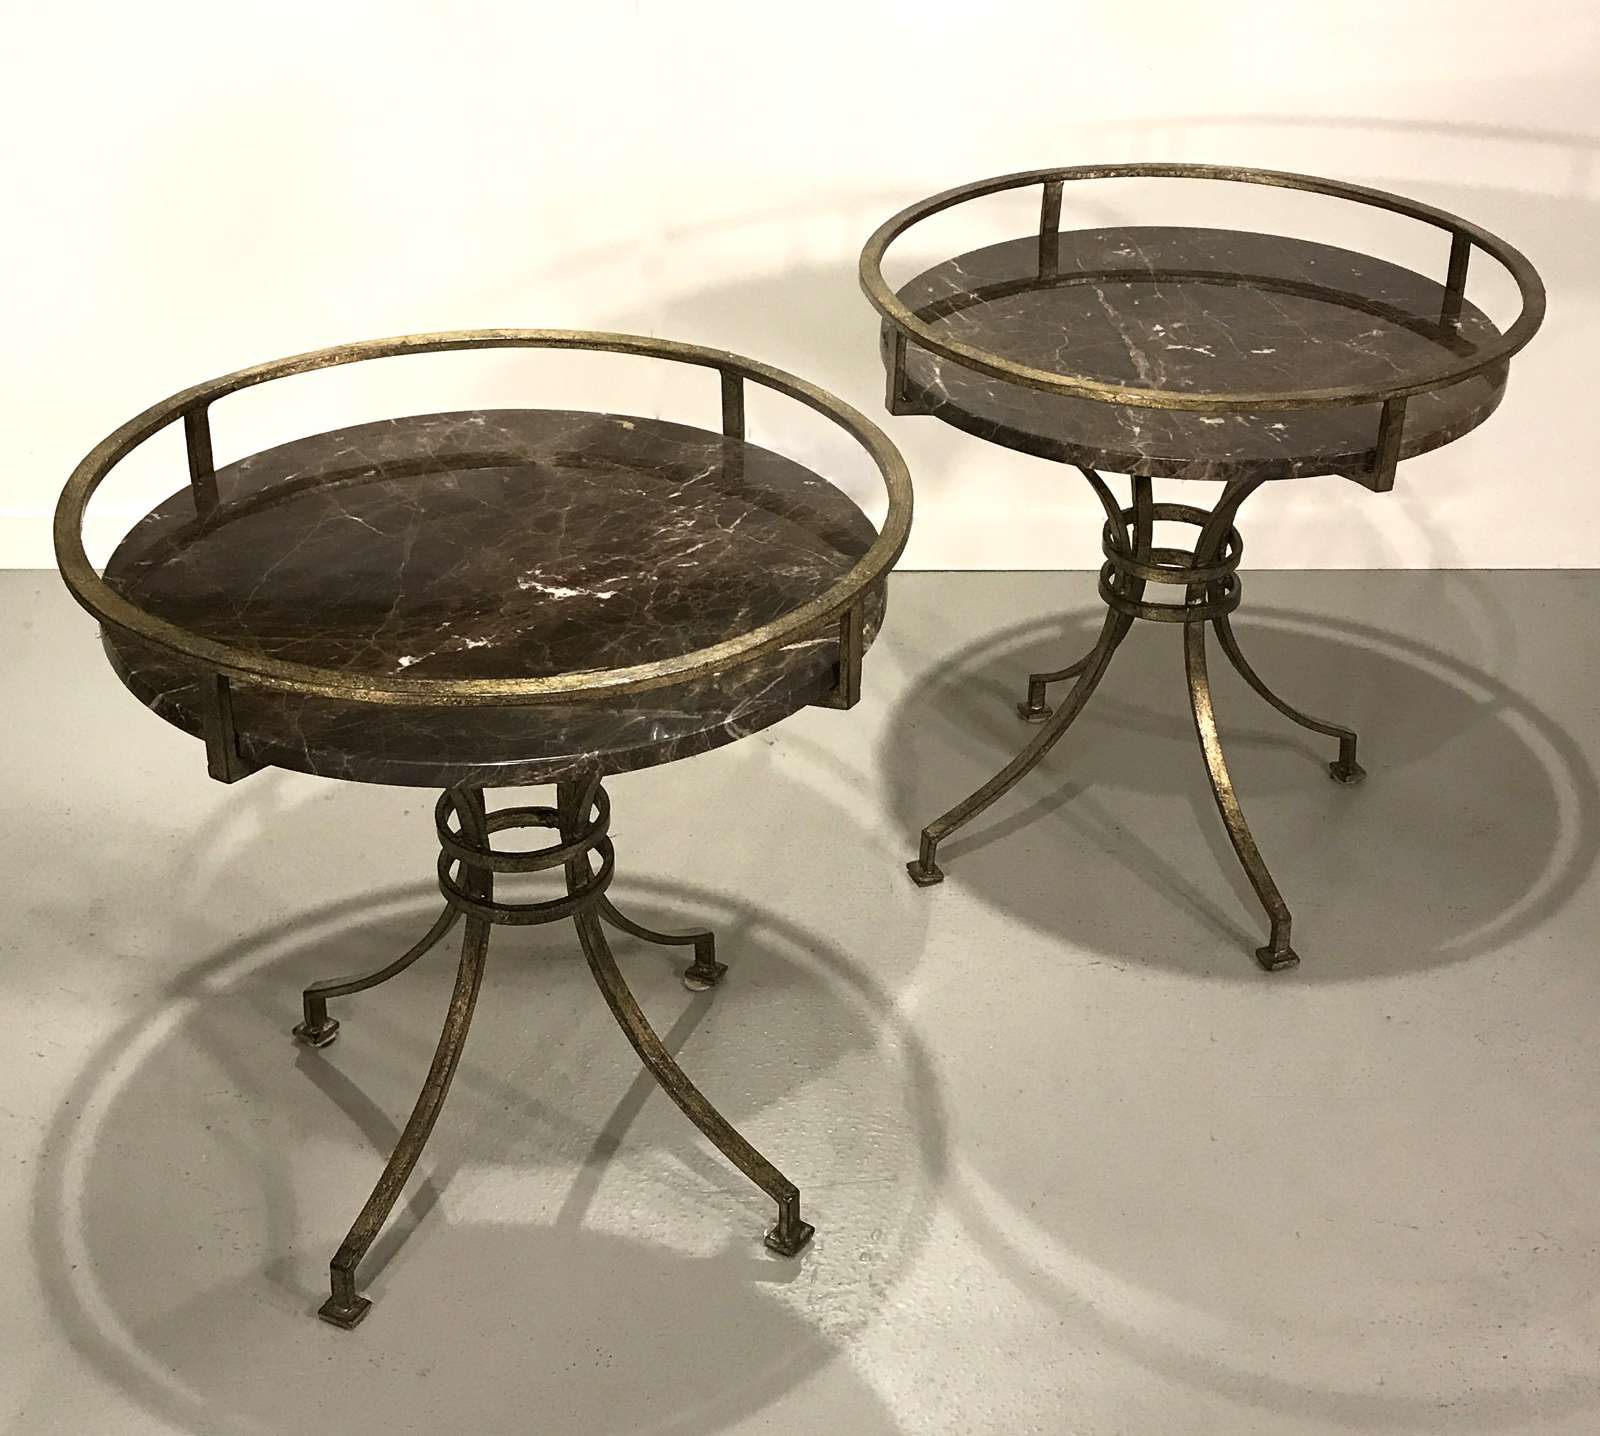 Completely new Pair of wrought iron tray side tables in distressed gilt finish  EO22